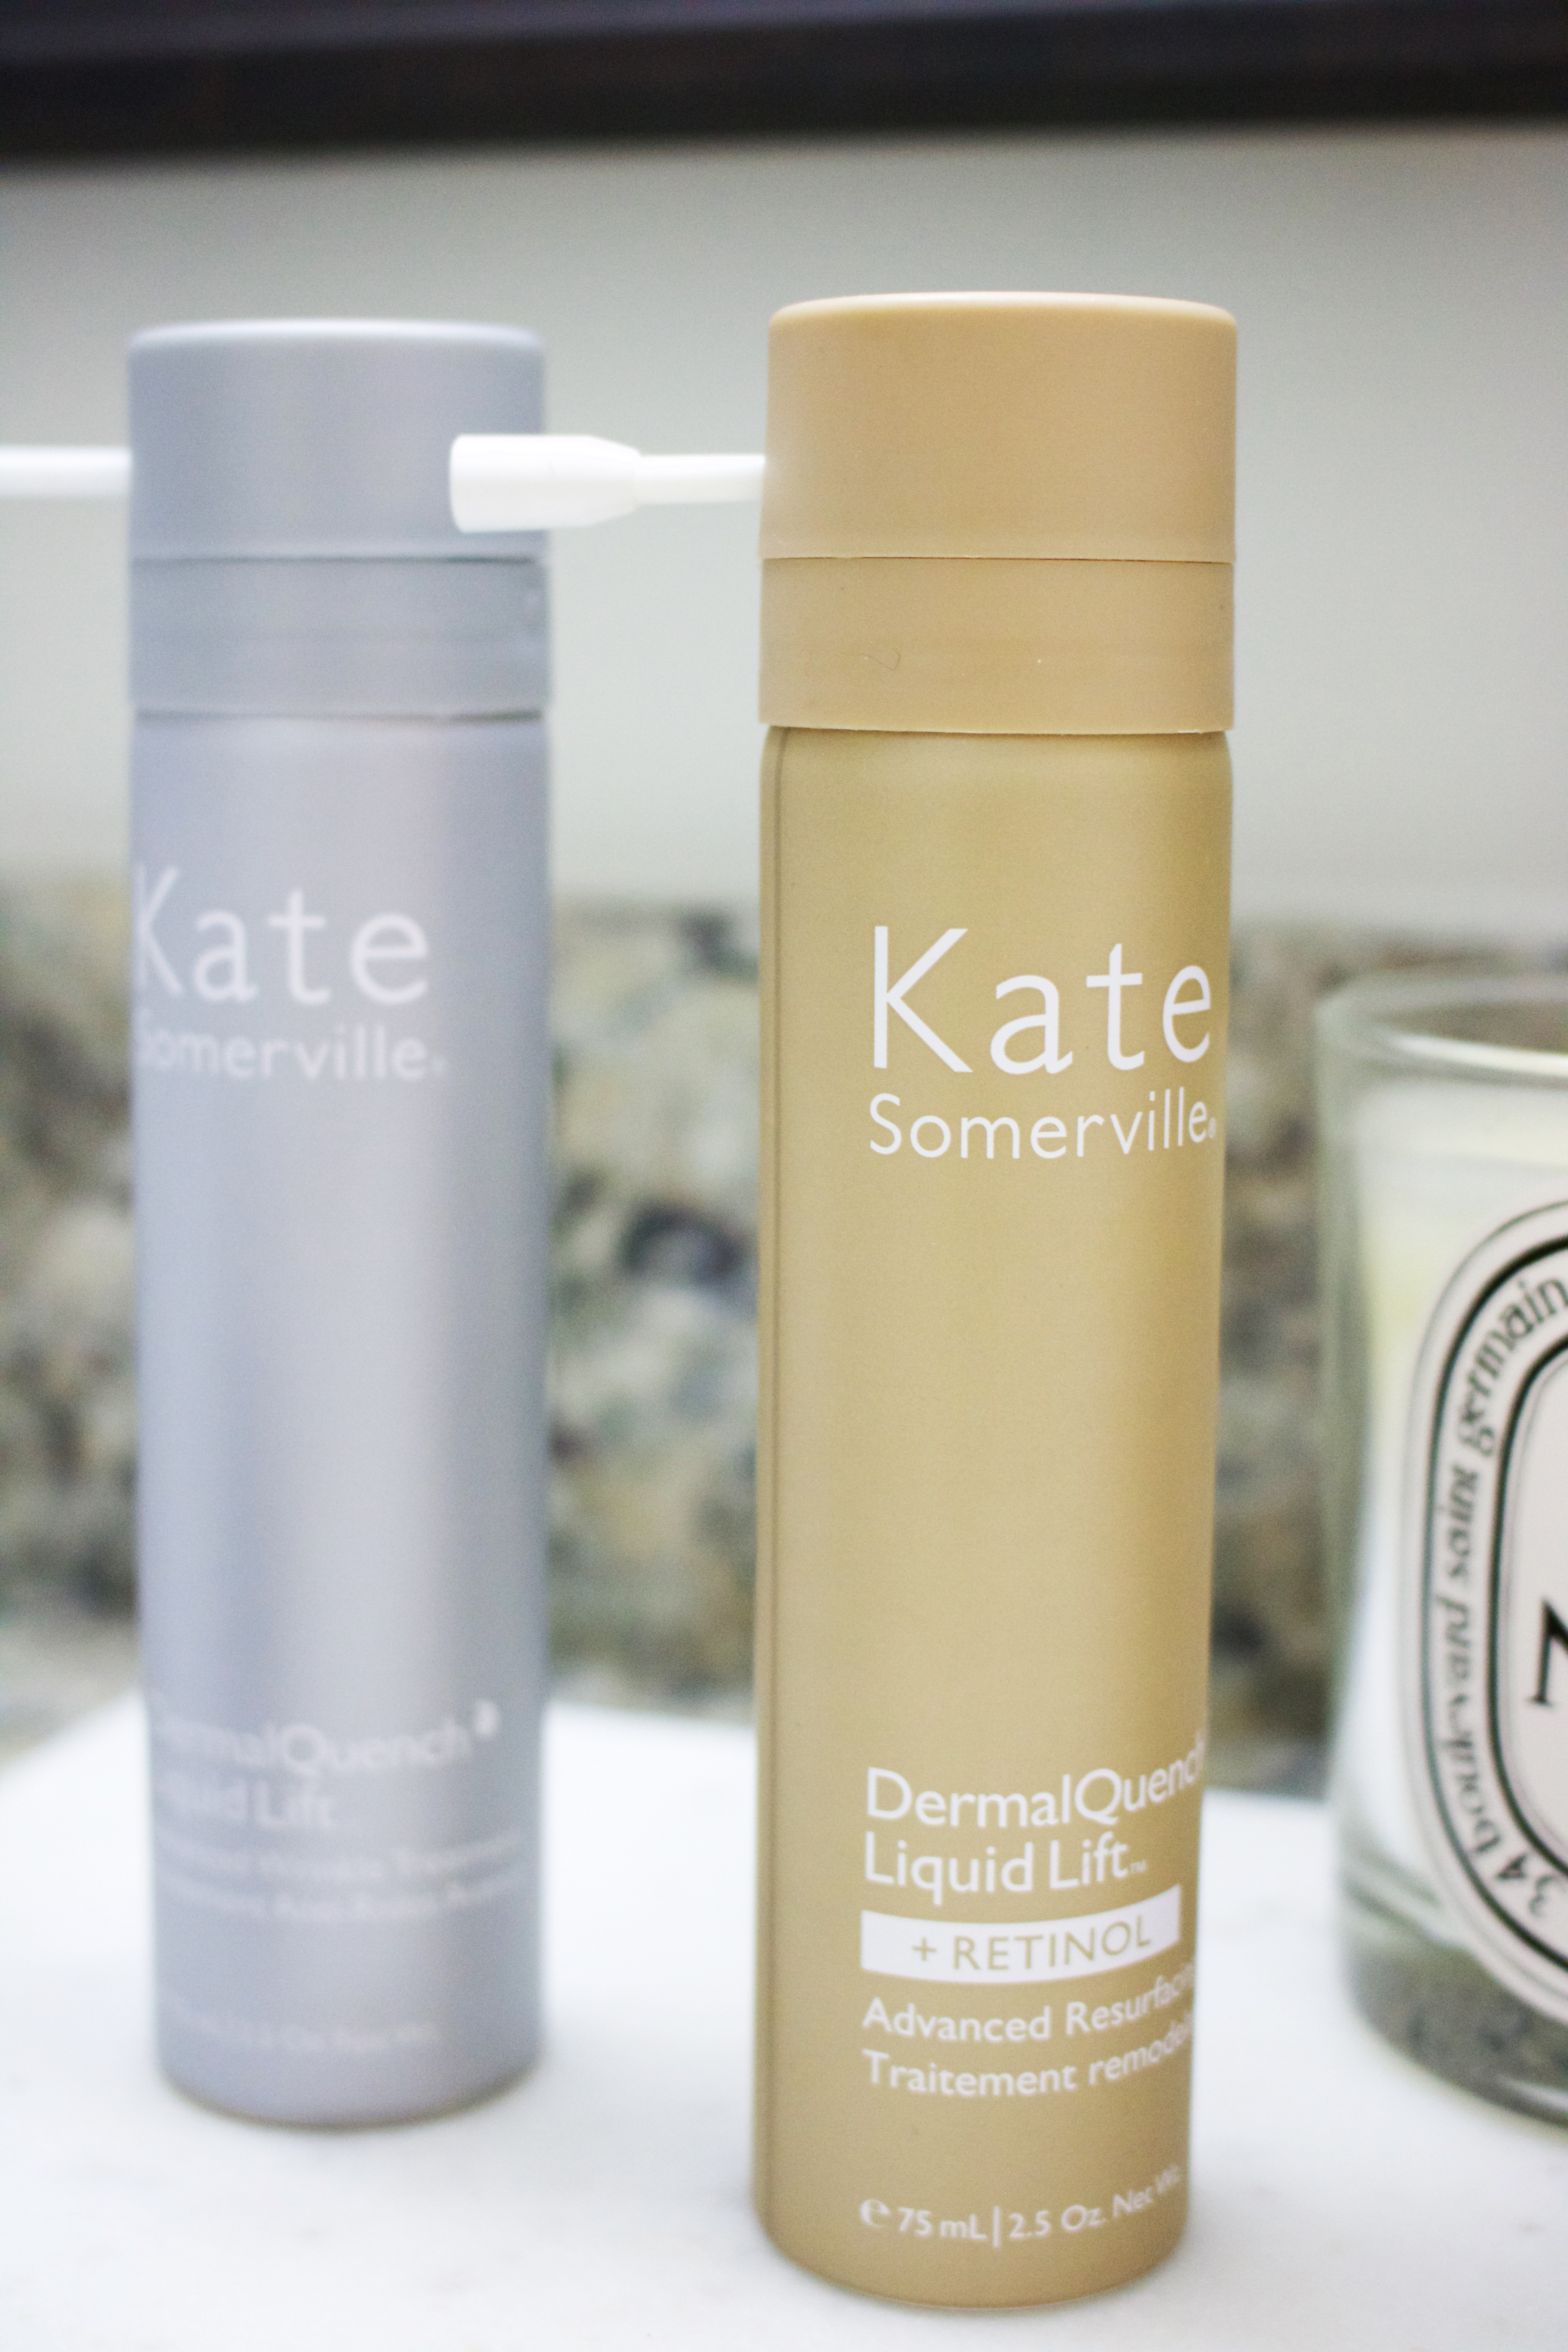 Kate Somerville - Skin Care Routine